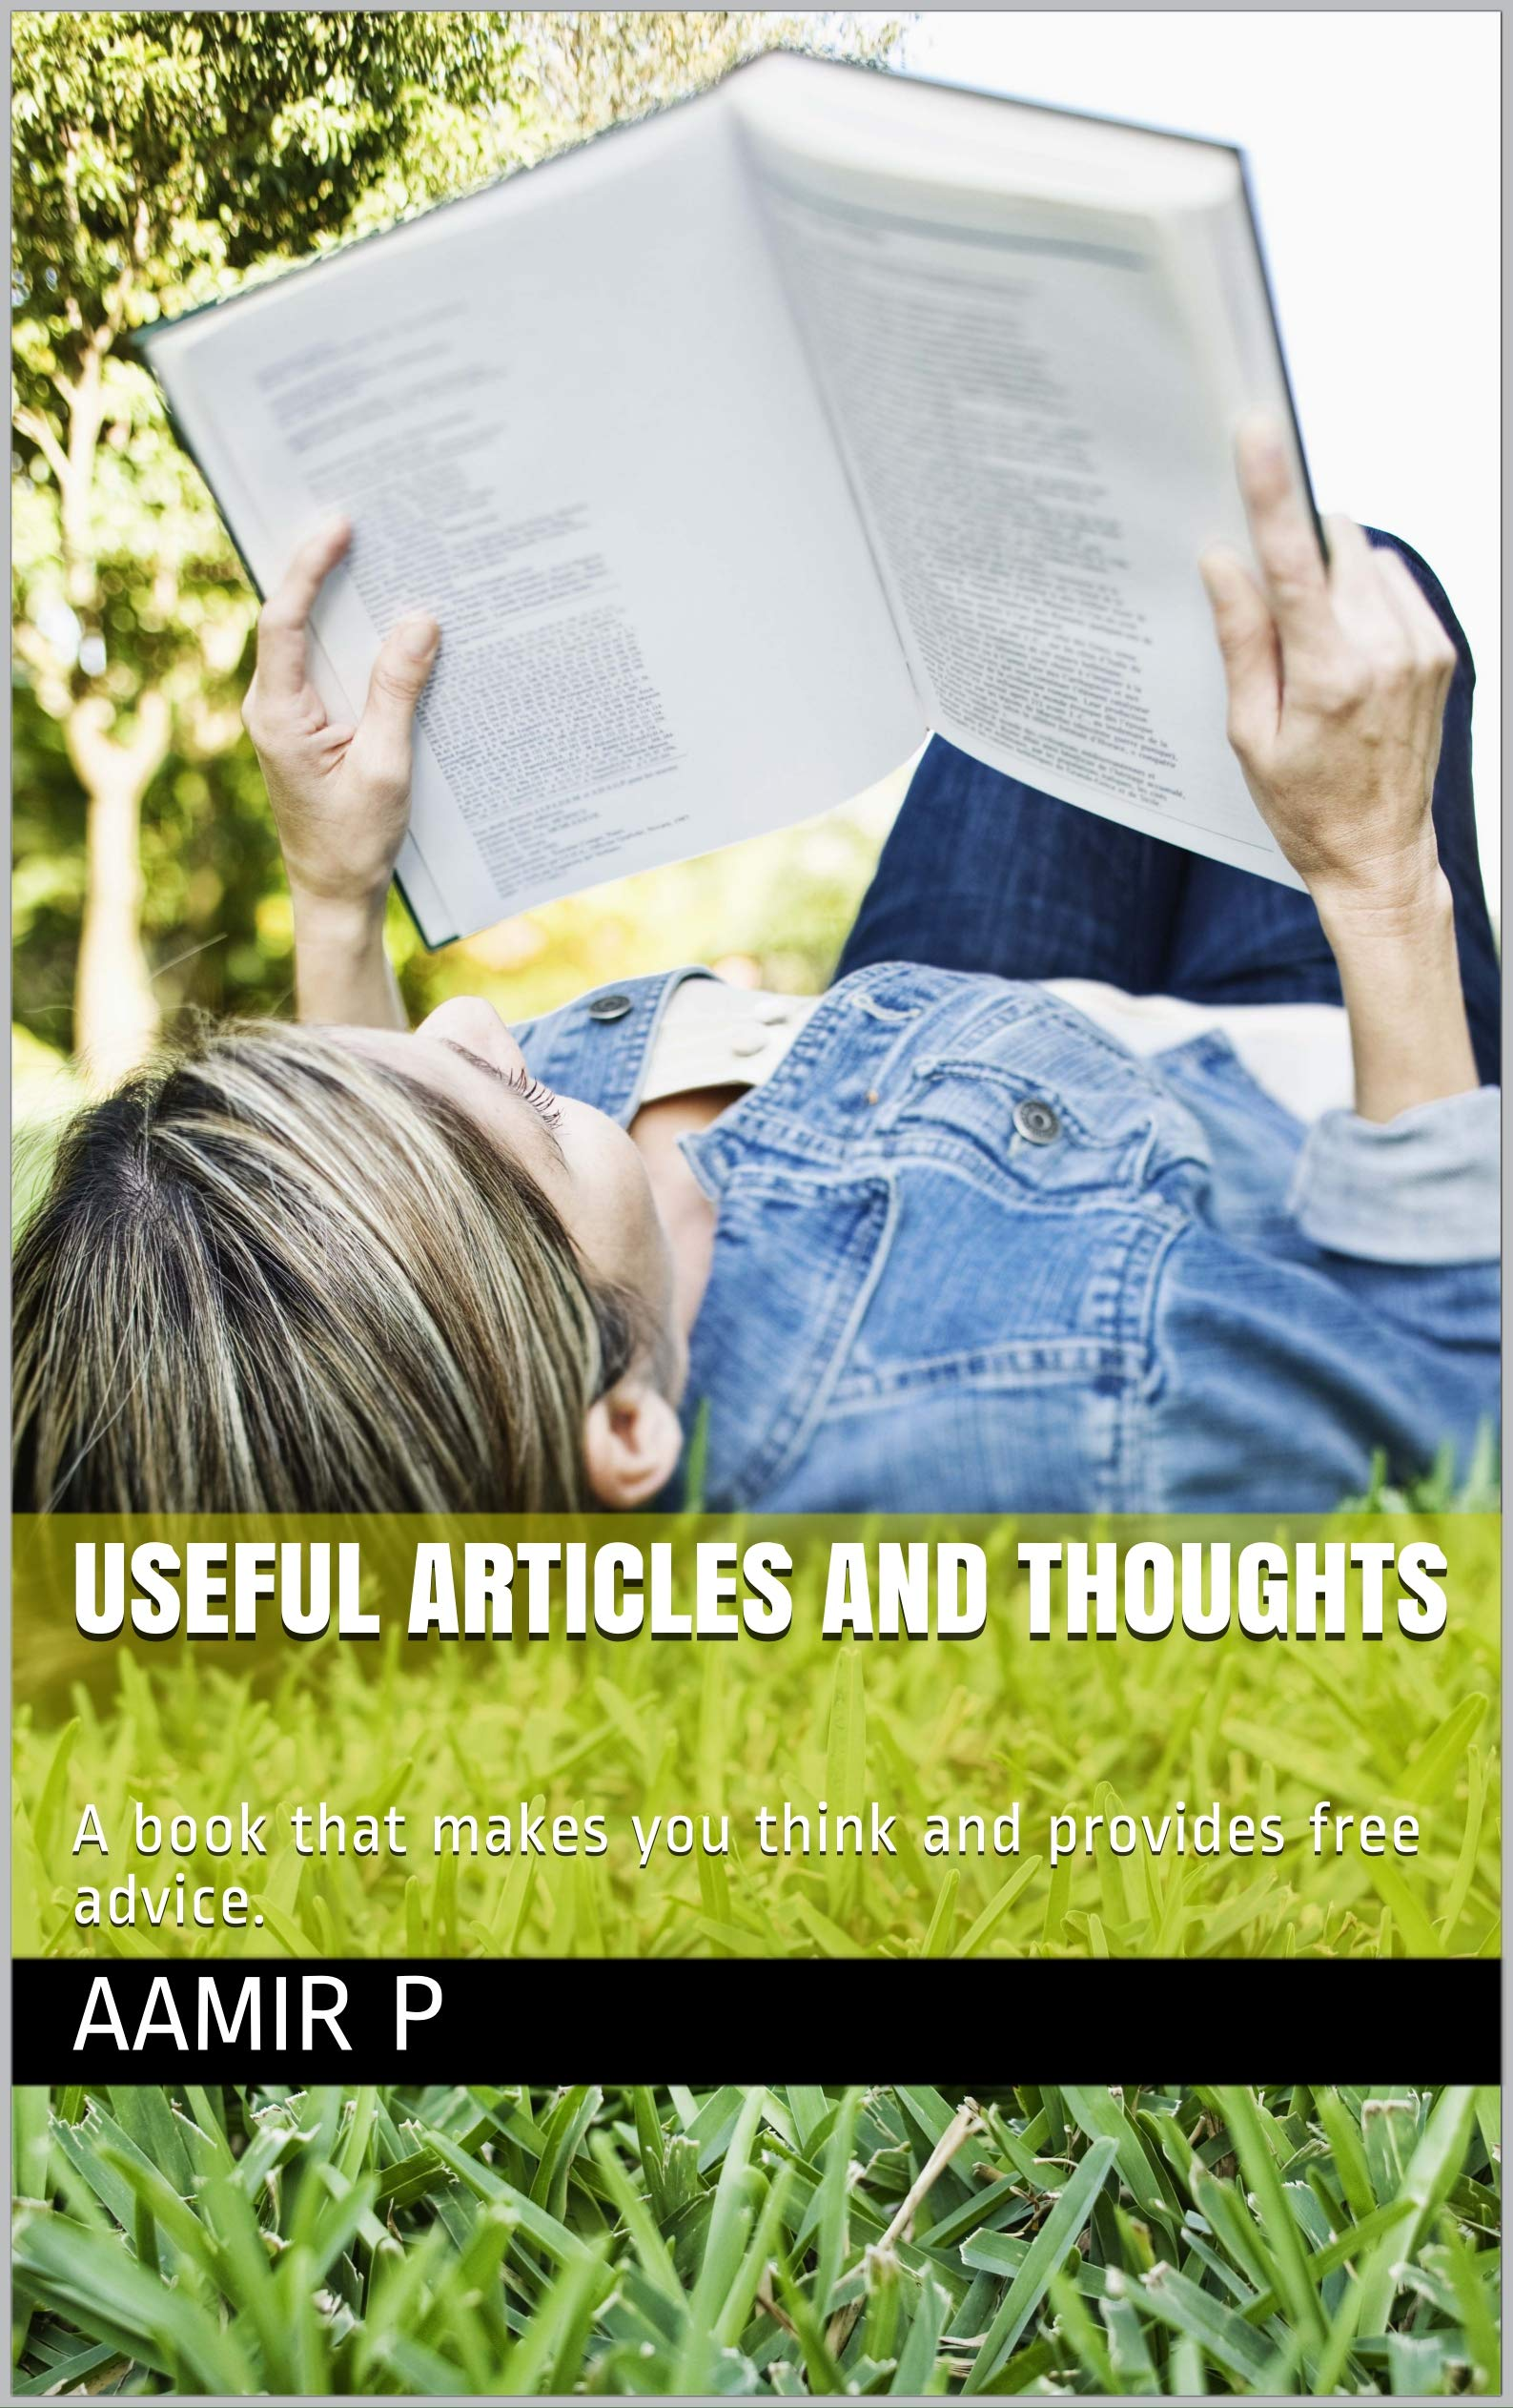 USEFUL ARTICLES AND THOUGHTS: A book that makes you think and provides free advice.